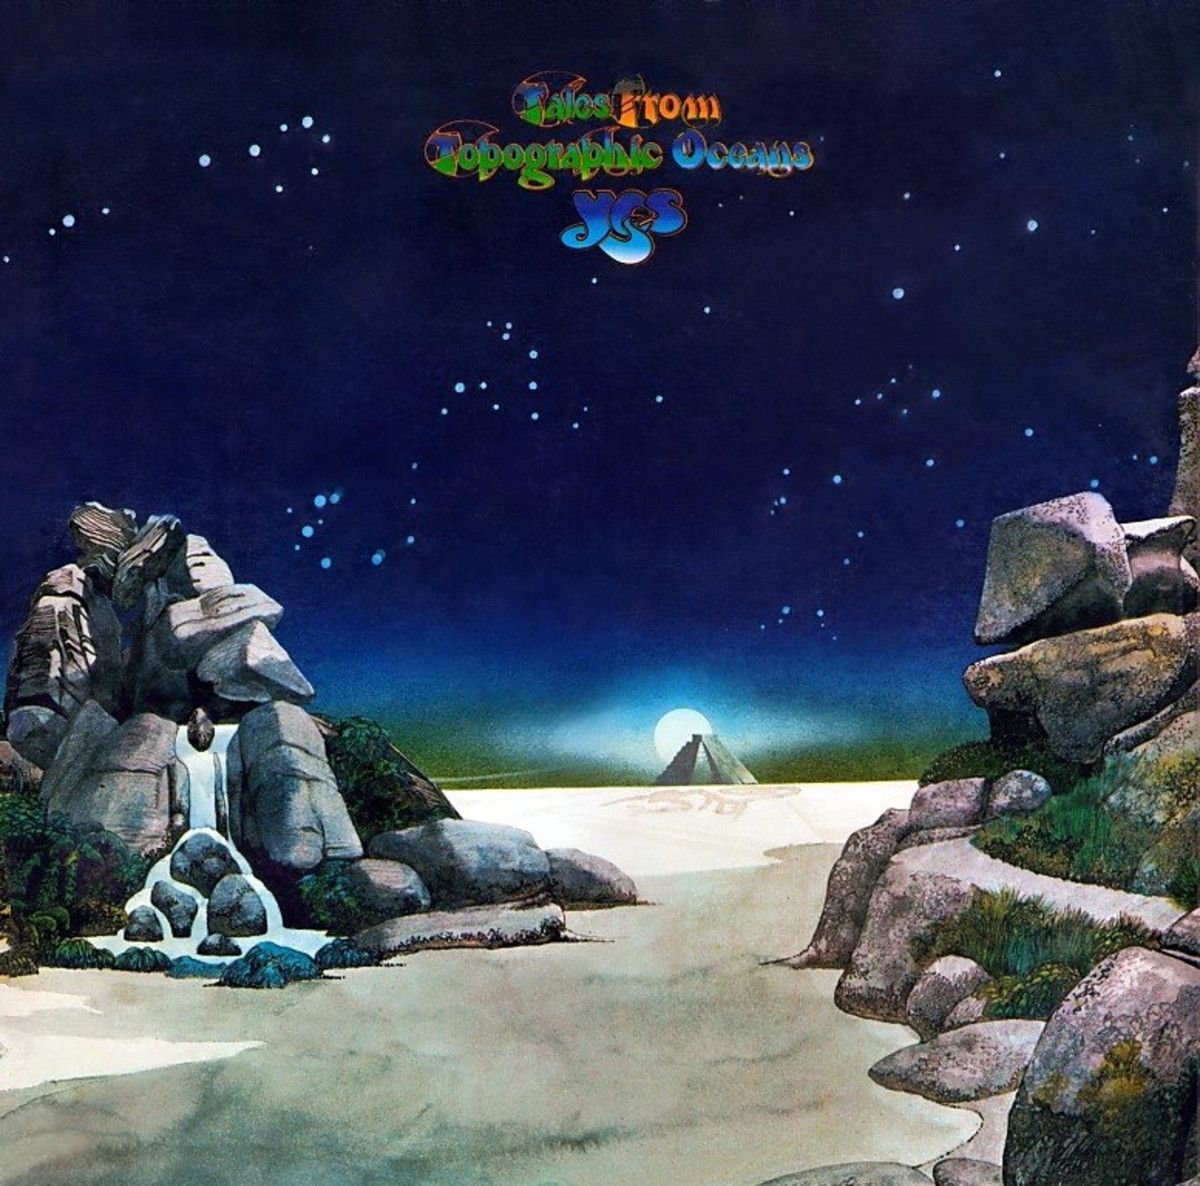 "Yes ""Tales from Topographic Oceans"" Atlantic Records SD 2-908 2-12"" LP Vinyl Record Set, US Pressing (1973) Gatefold Album Cover Art & Design Roger Dean"